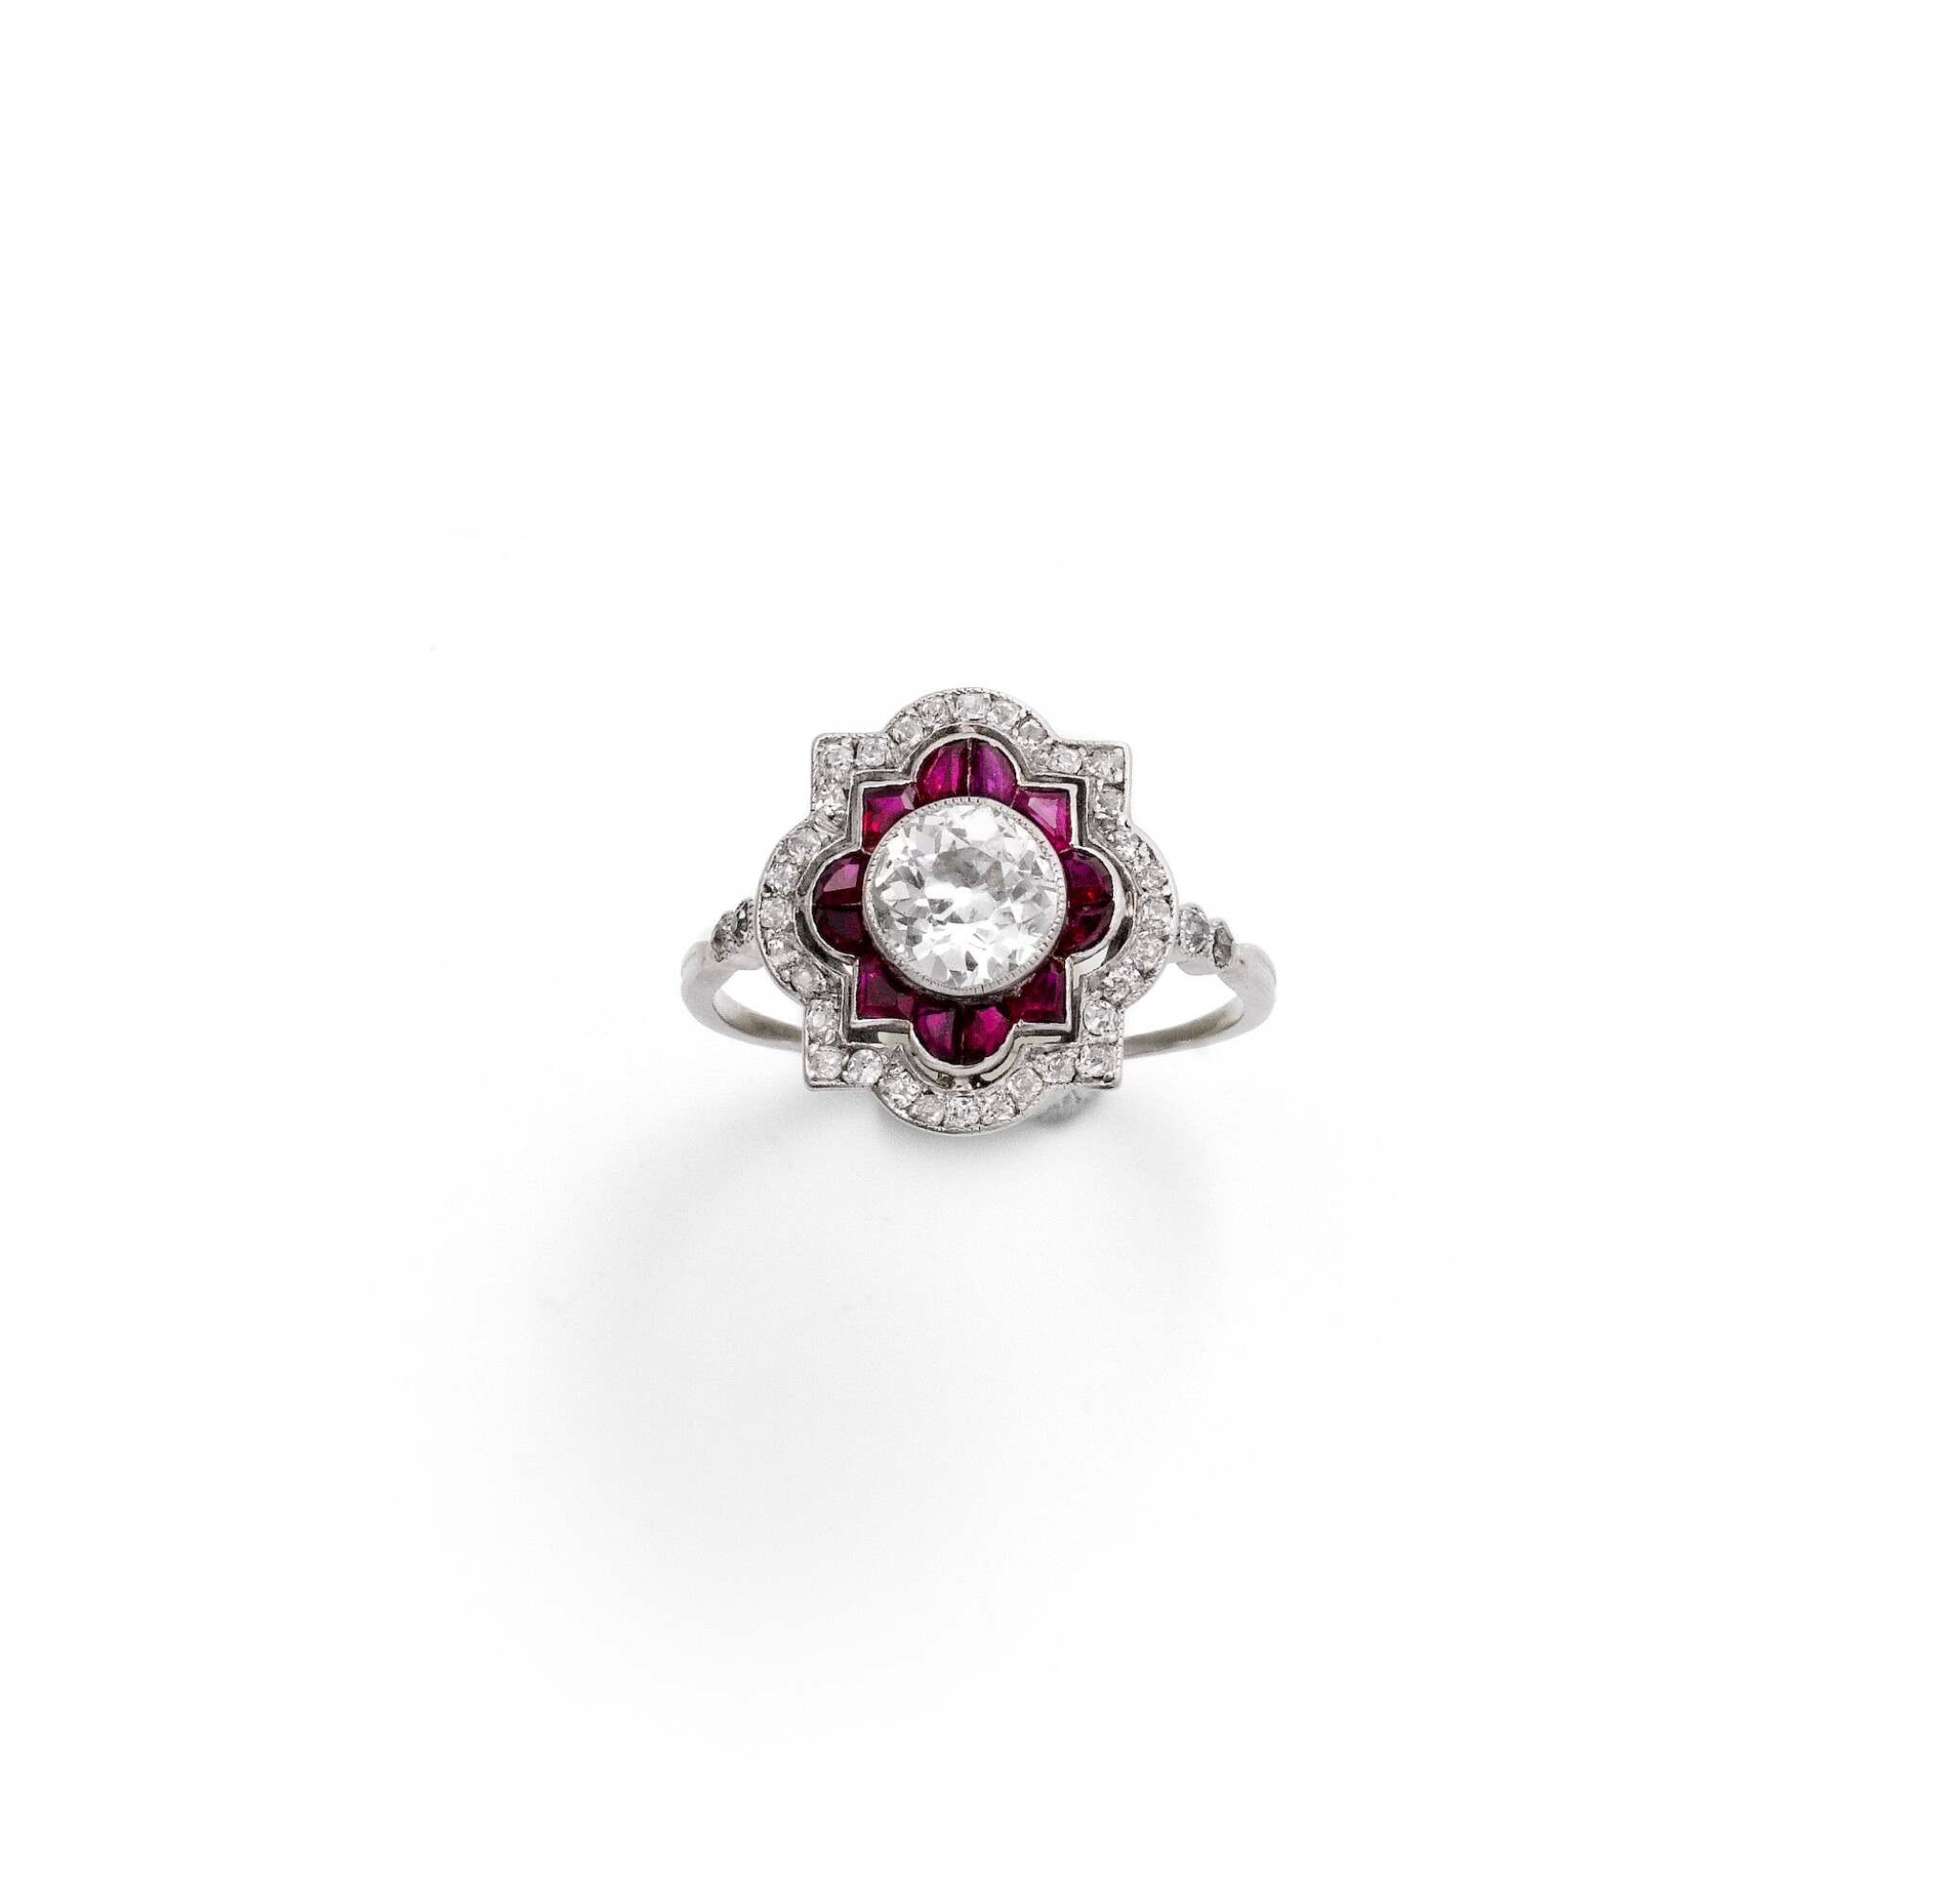 View full screen - View 1 of Lot 49. Ruby and diamond ring [Bague rubis et diamants], 1930s [vers 1930].